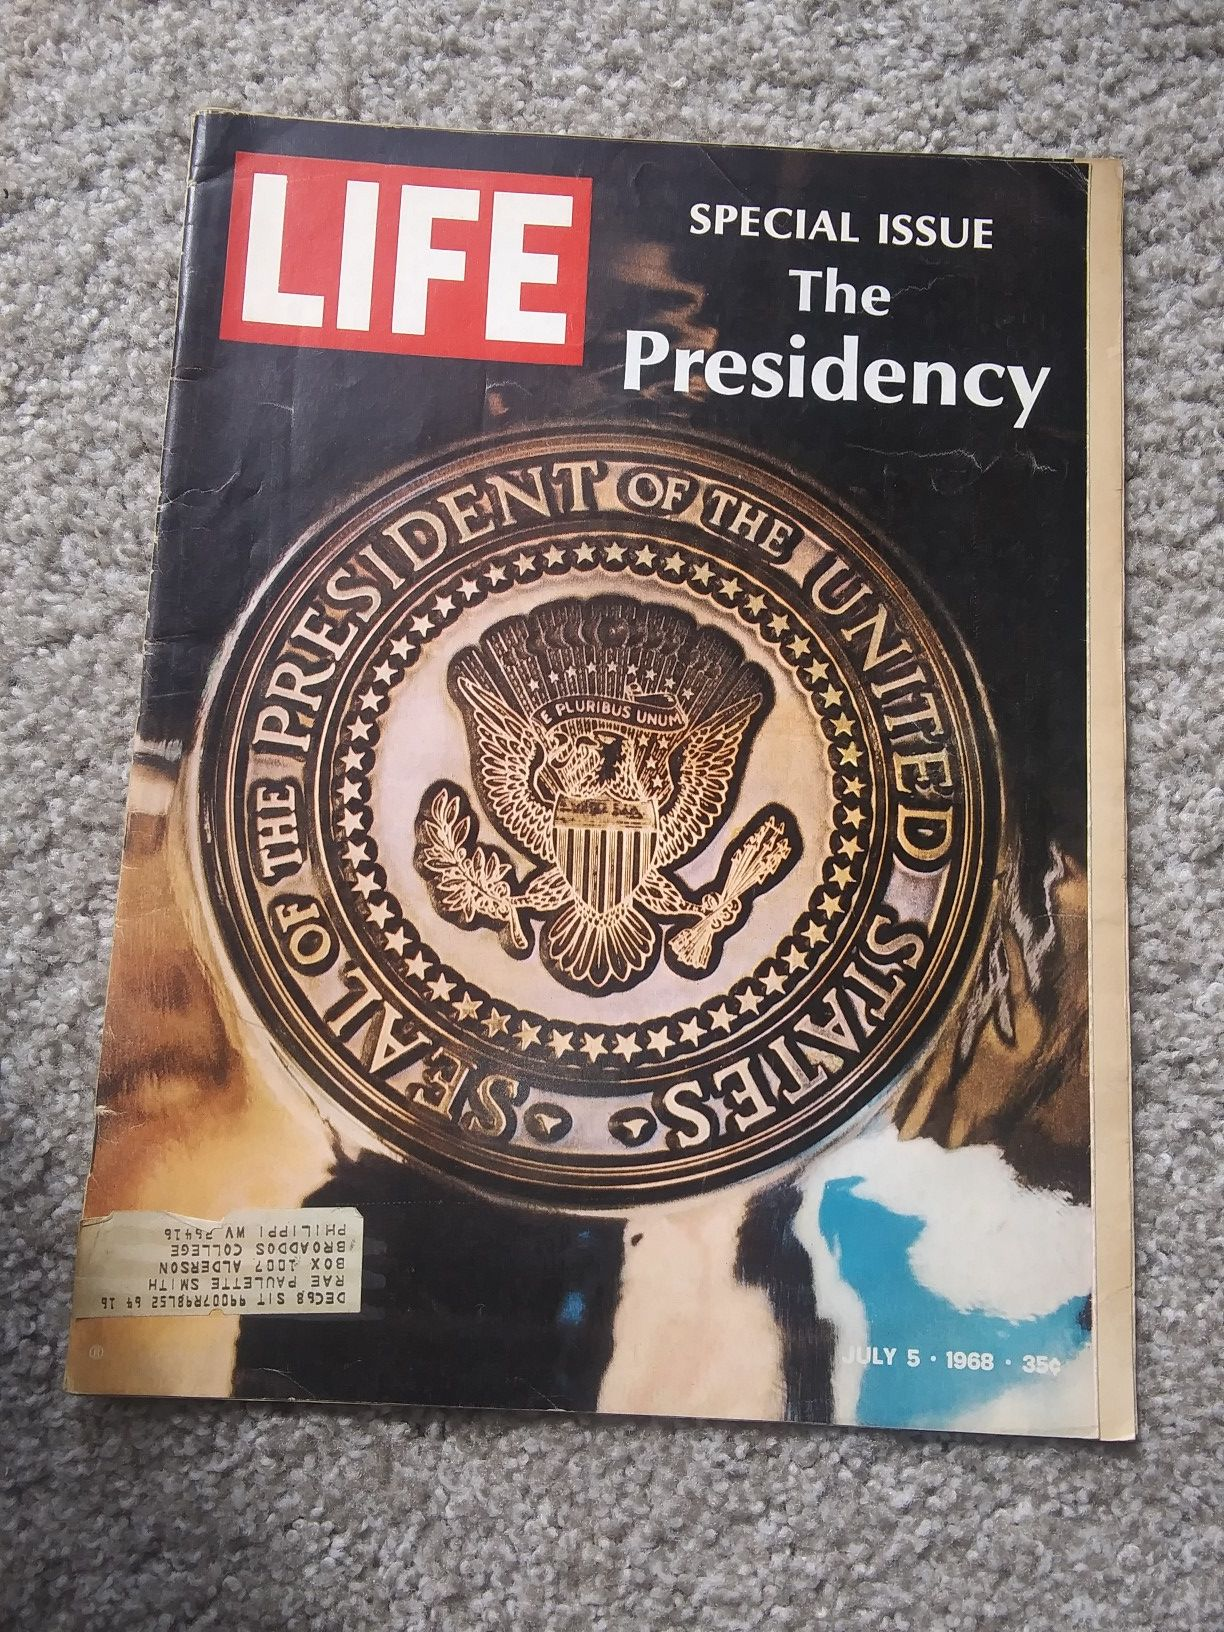 RARE 1968 LIFE Mag SPECIAL ISSUE : The Presidency